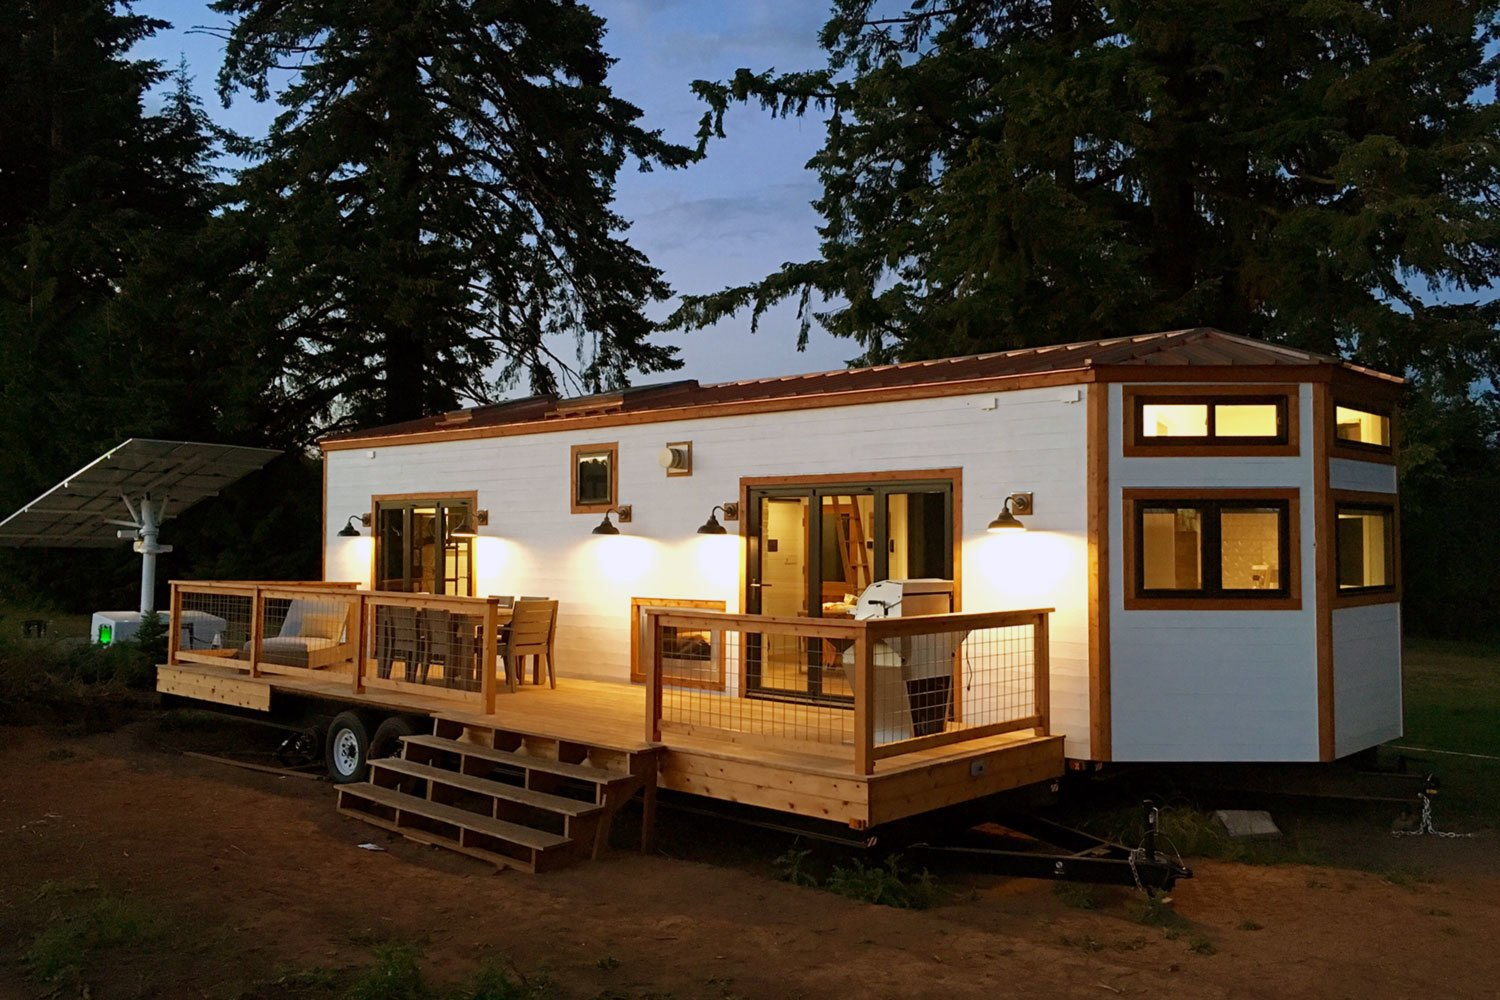 This tiny house on wheels is by Tiny Heirloom. To make the home more eco-friendly, the owner installed a solar panel nearby to generate power.  Photo 10 of 10 in 10 Tiny Happy Hawaiian Huts